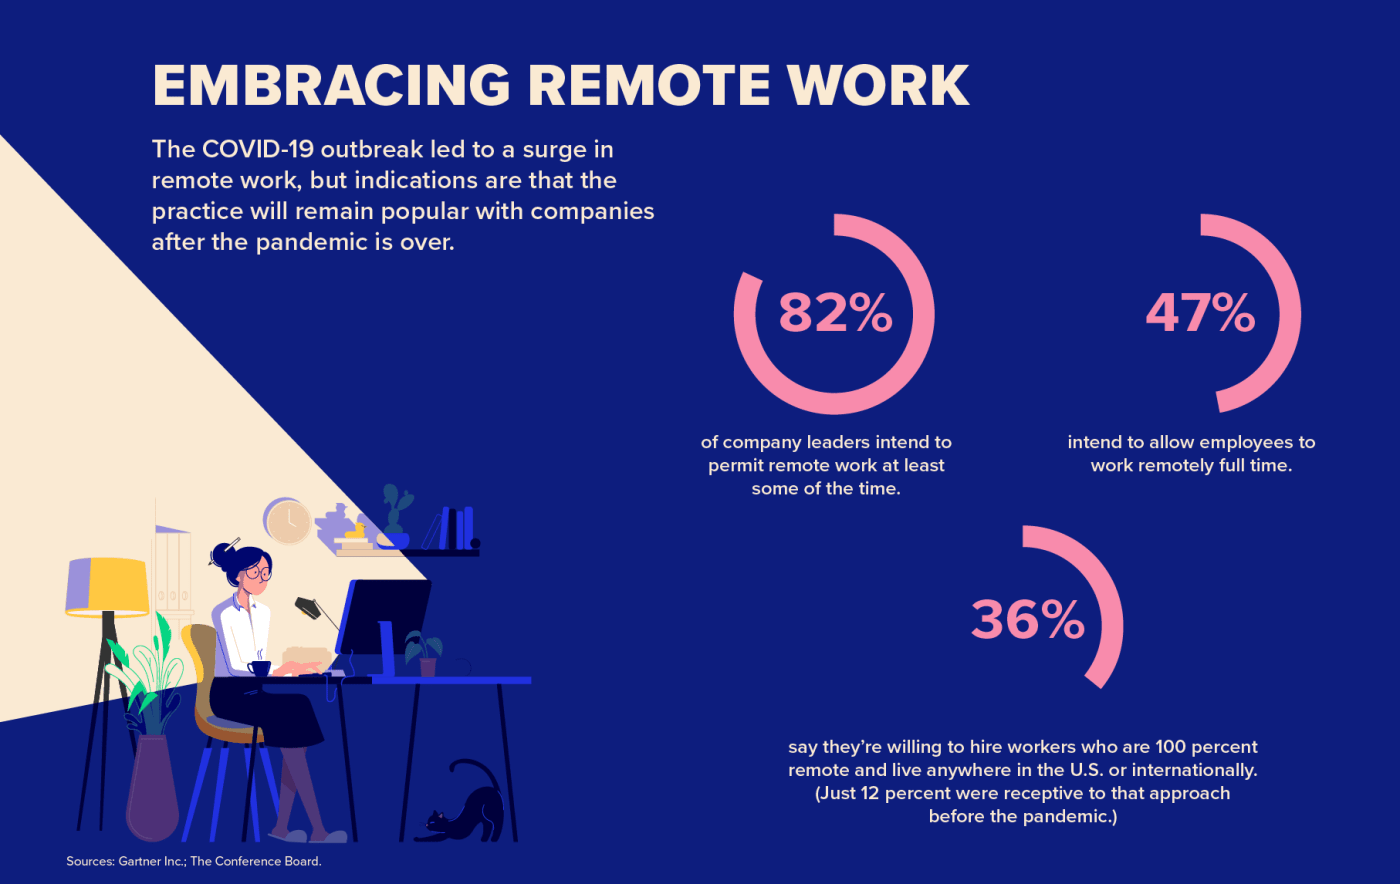 Embracing Remote Work